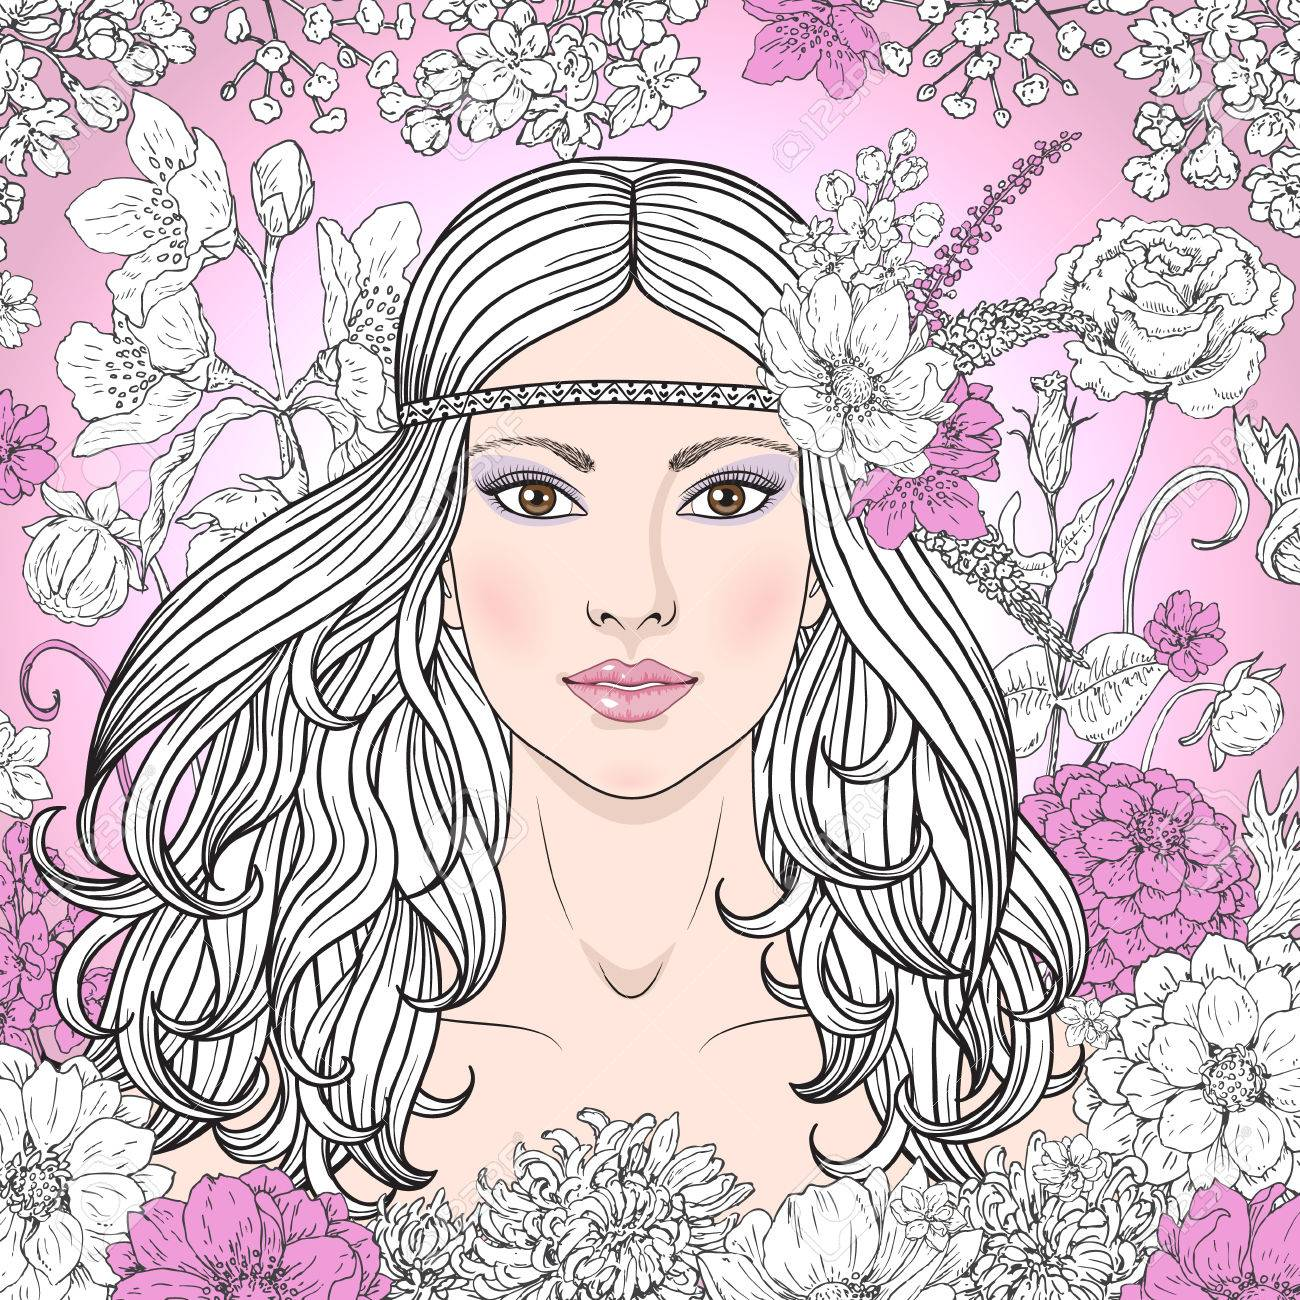 Hand drawn beautiful girl with flowers on pink background doodle